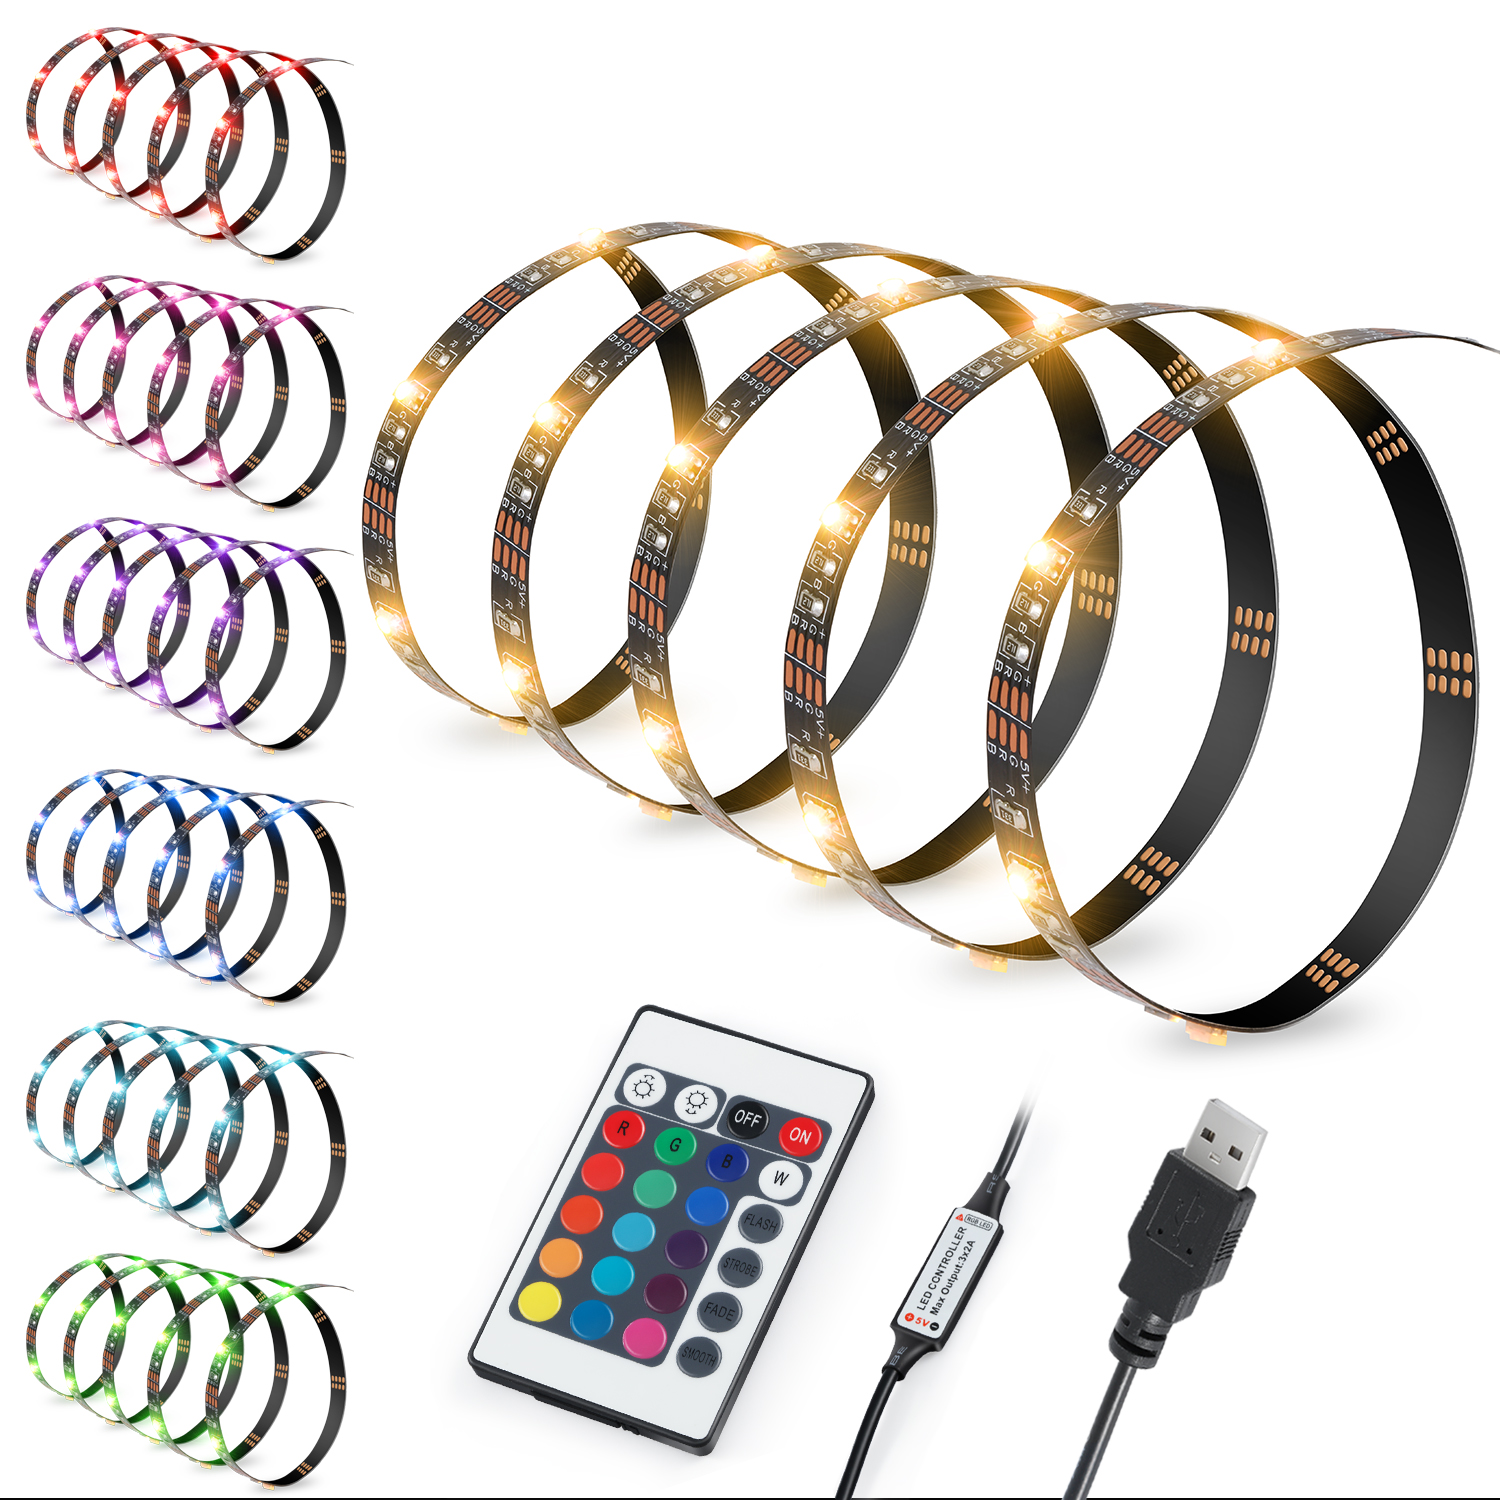 "80"" LED Strips Bias Lighting TV Backlight RGB Lights with Remote Control Multi Color"